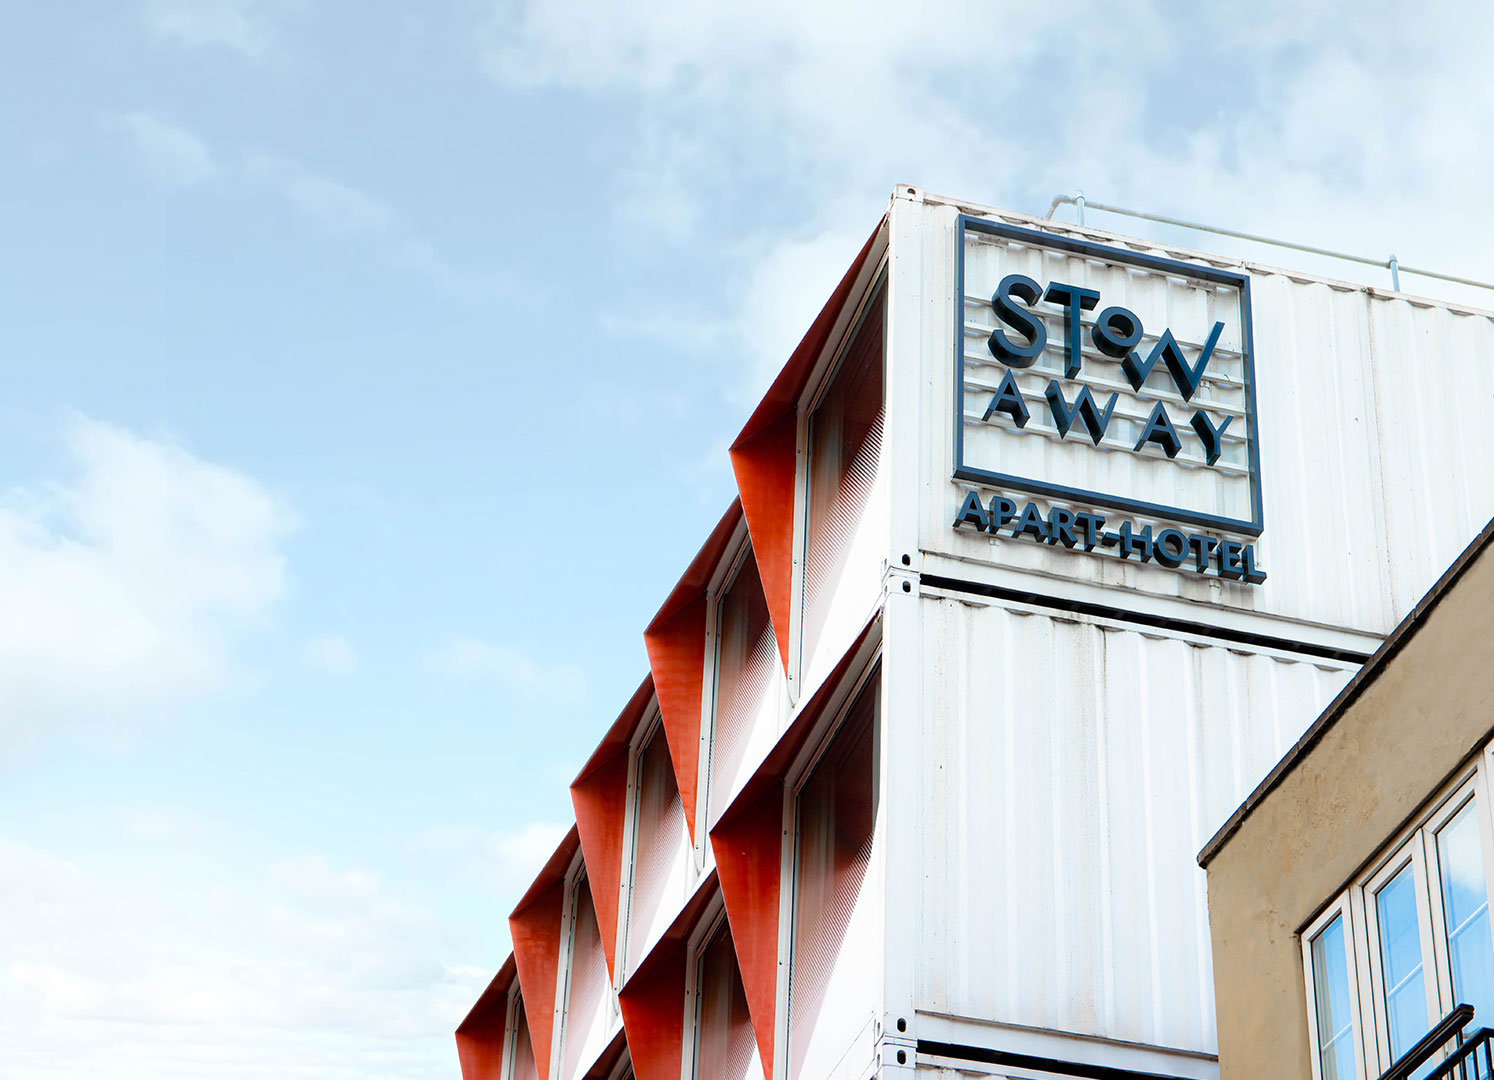 Exterior shot of Stow-Away South Bank, London Eco-friendly Apart-Hotel. Photo by Jamie Melville Ormston commissioned by Stow-Away via KOH-CREATE. CopRight Stow-Away 2020, all rights reserved.